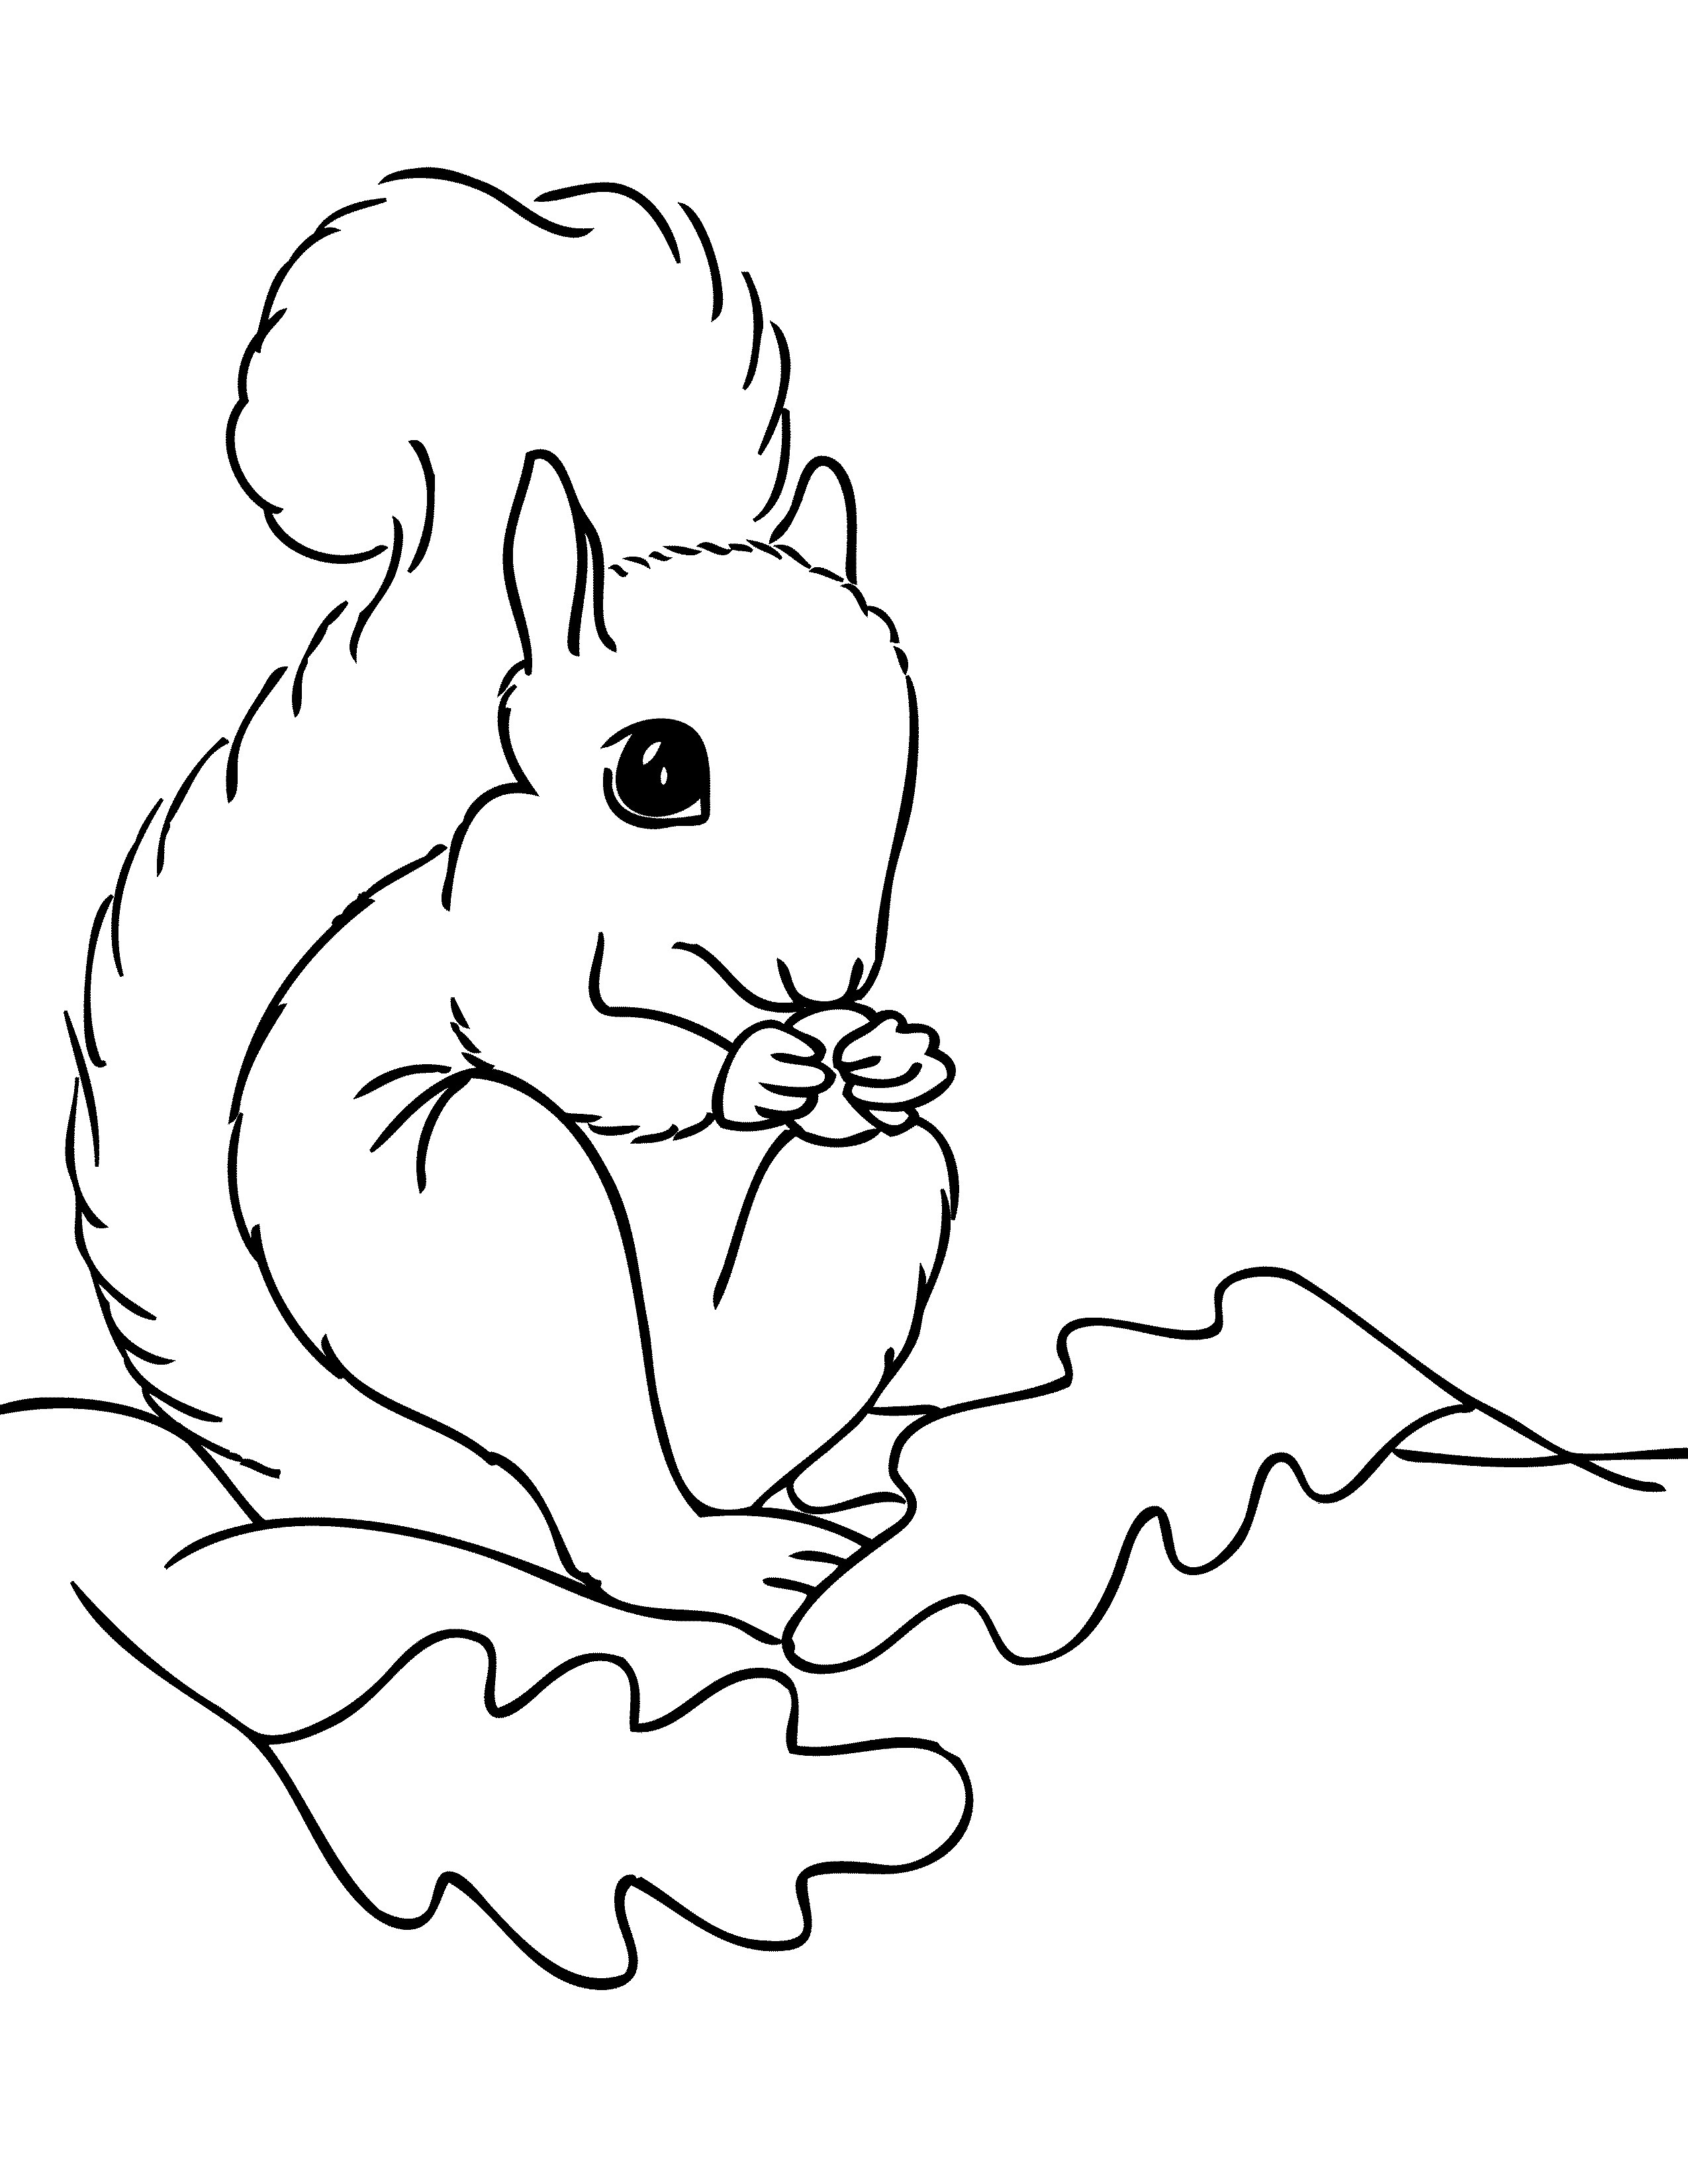 squirrel coloring pages free free printable squirrel coloring pages for kids animal place pages coloring squirrel free